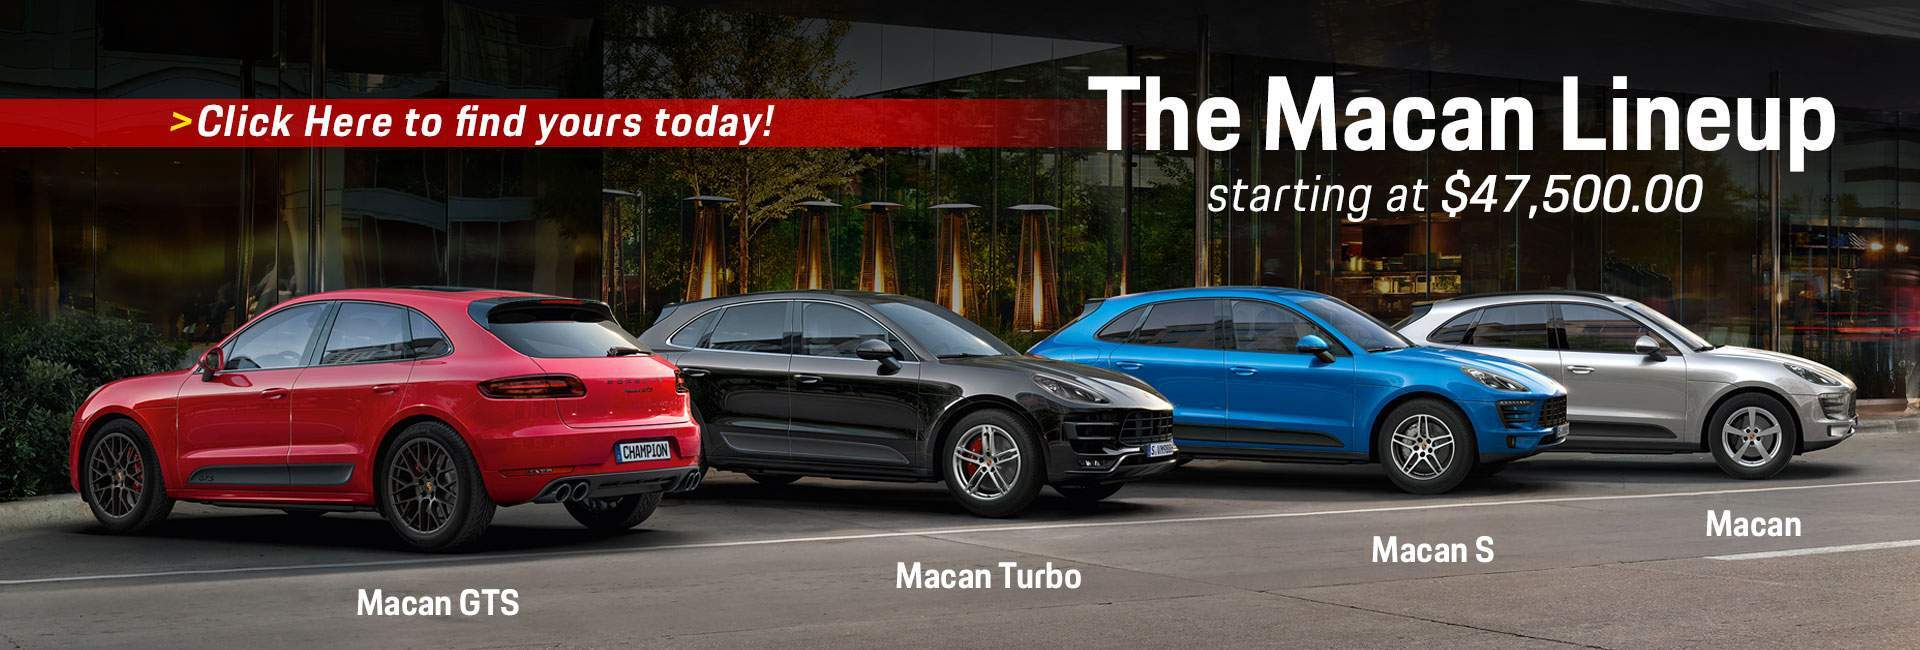 The Macan Lineup